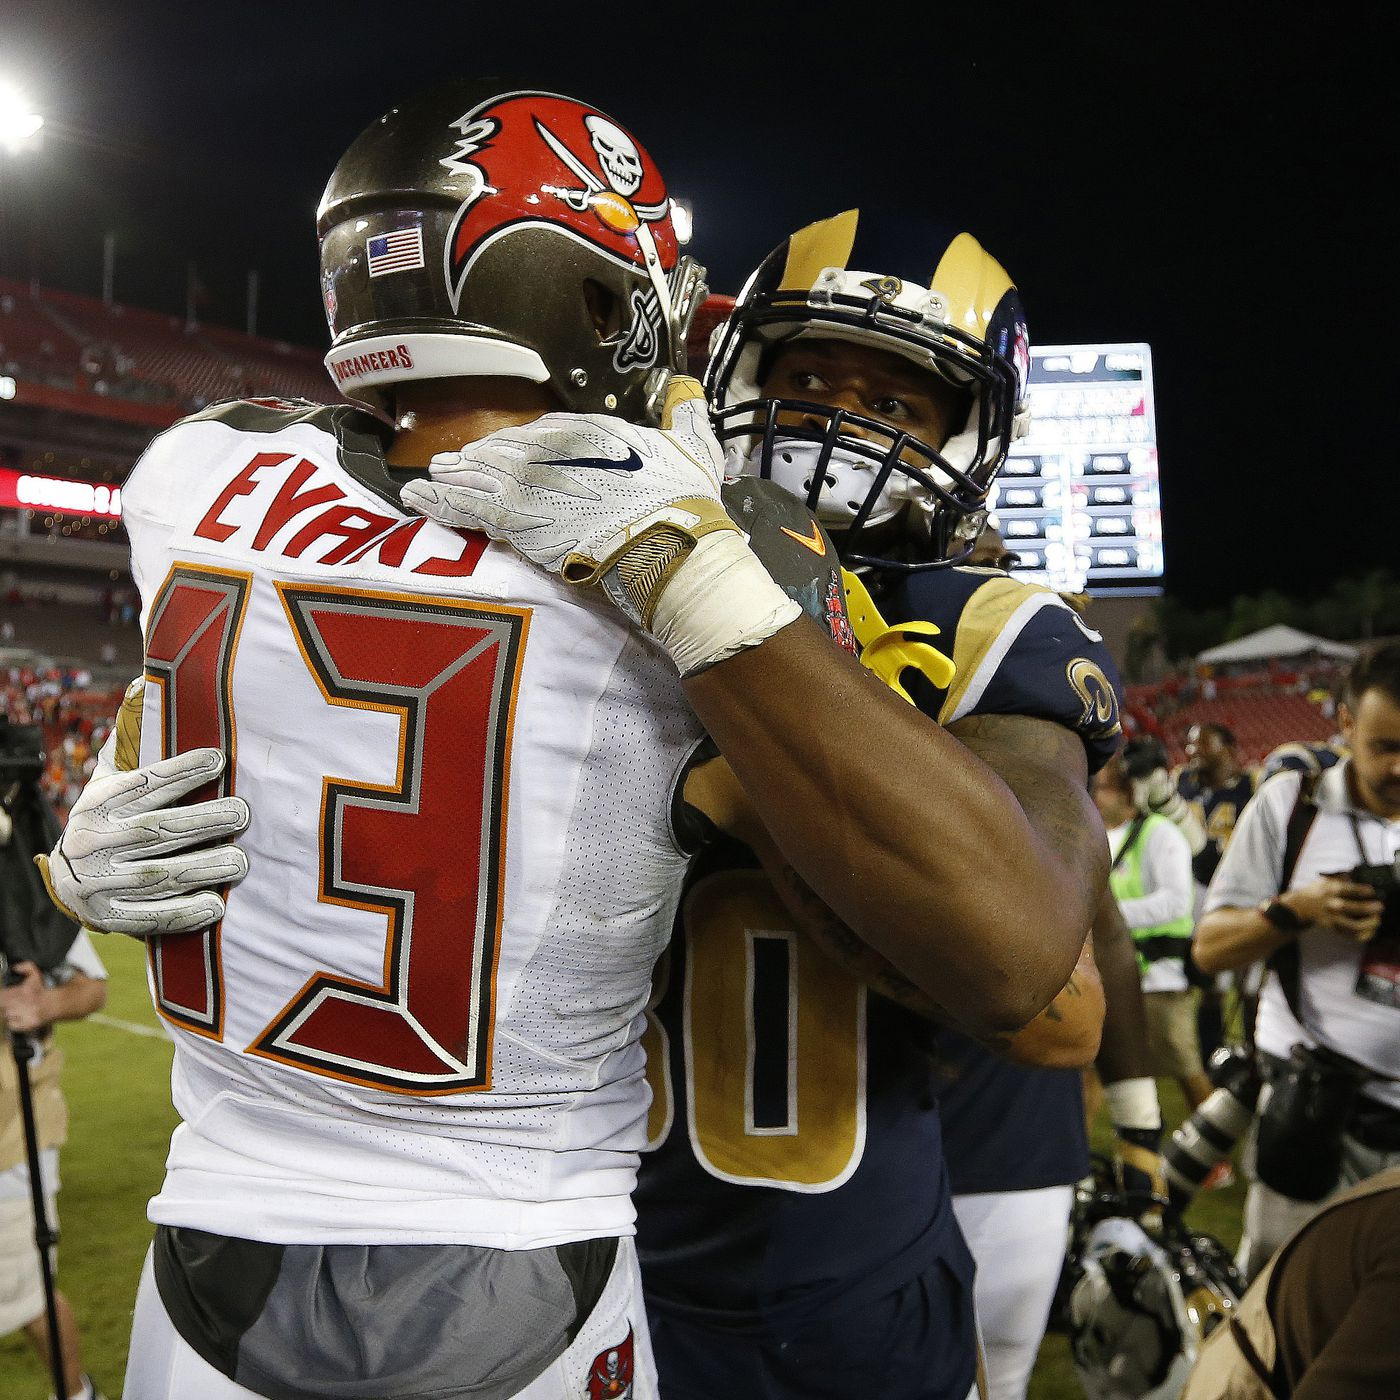 bucs vs rams series history bucs nation bucs vs rams series history bucs nation